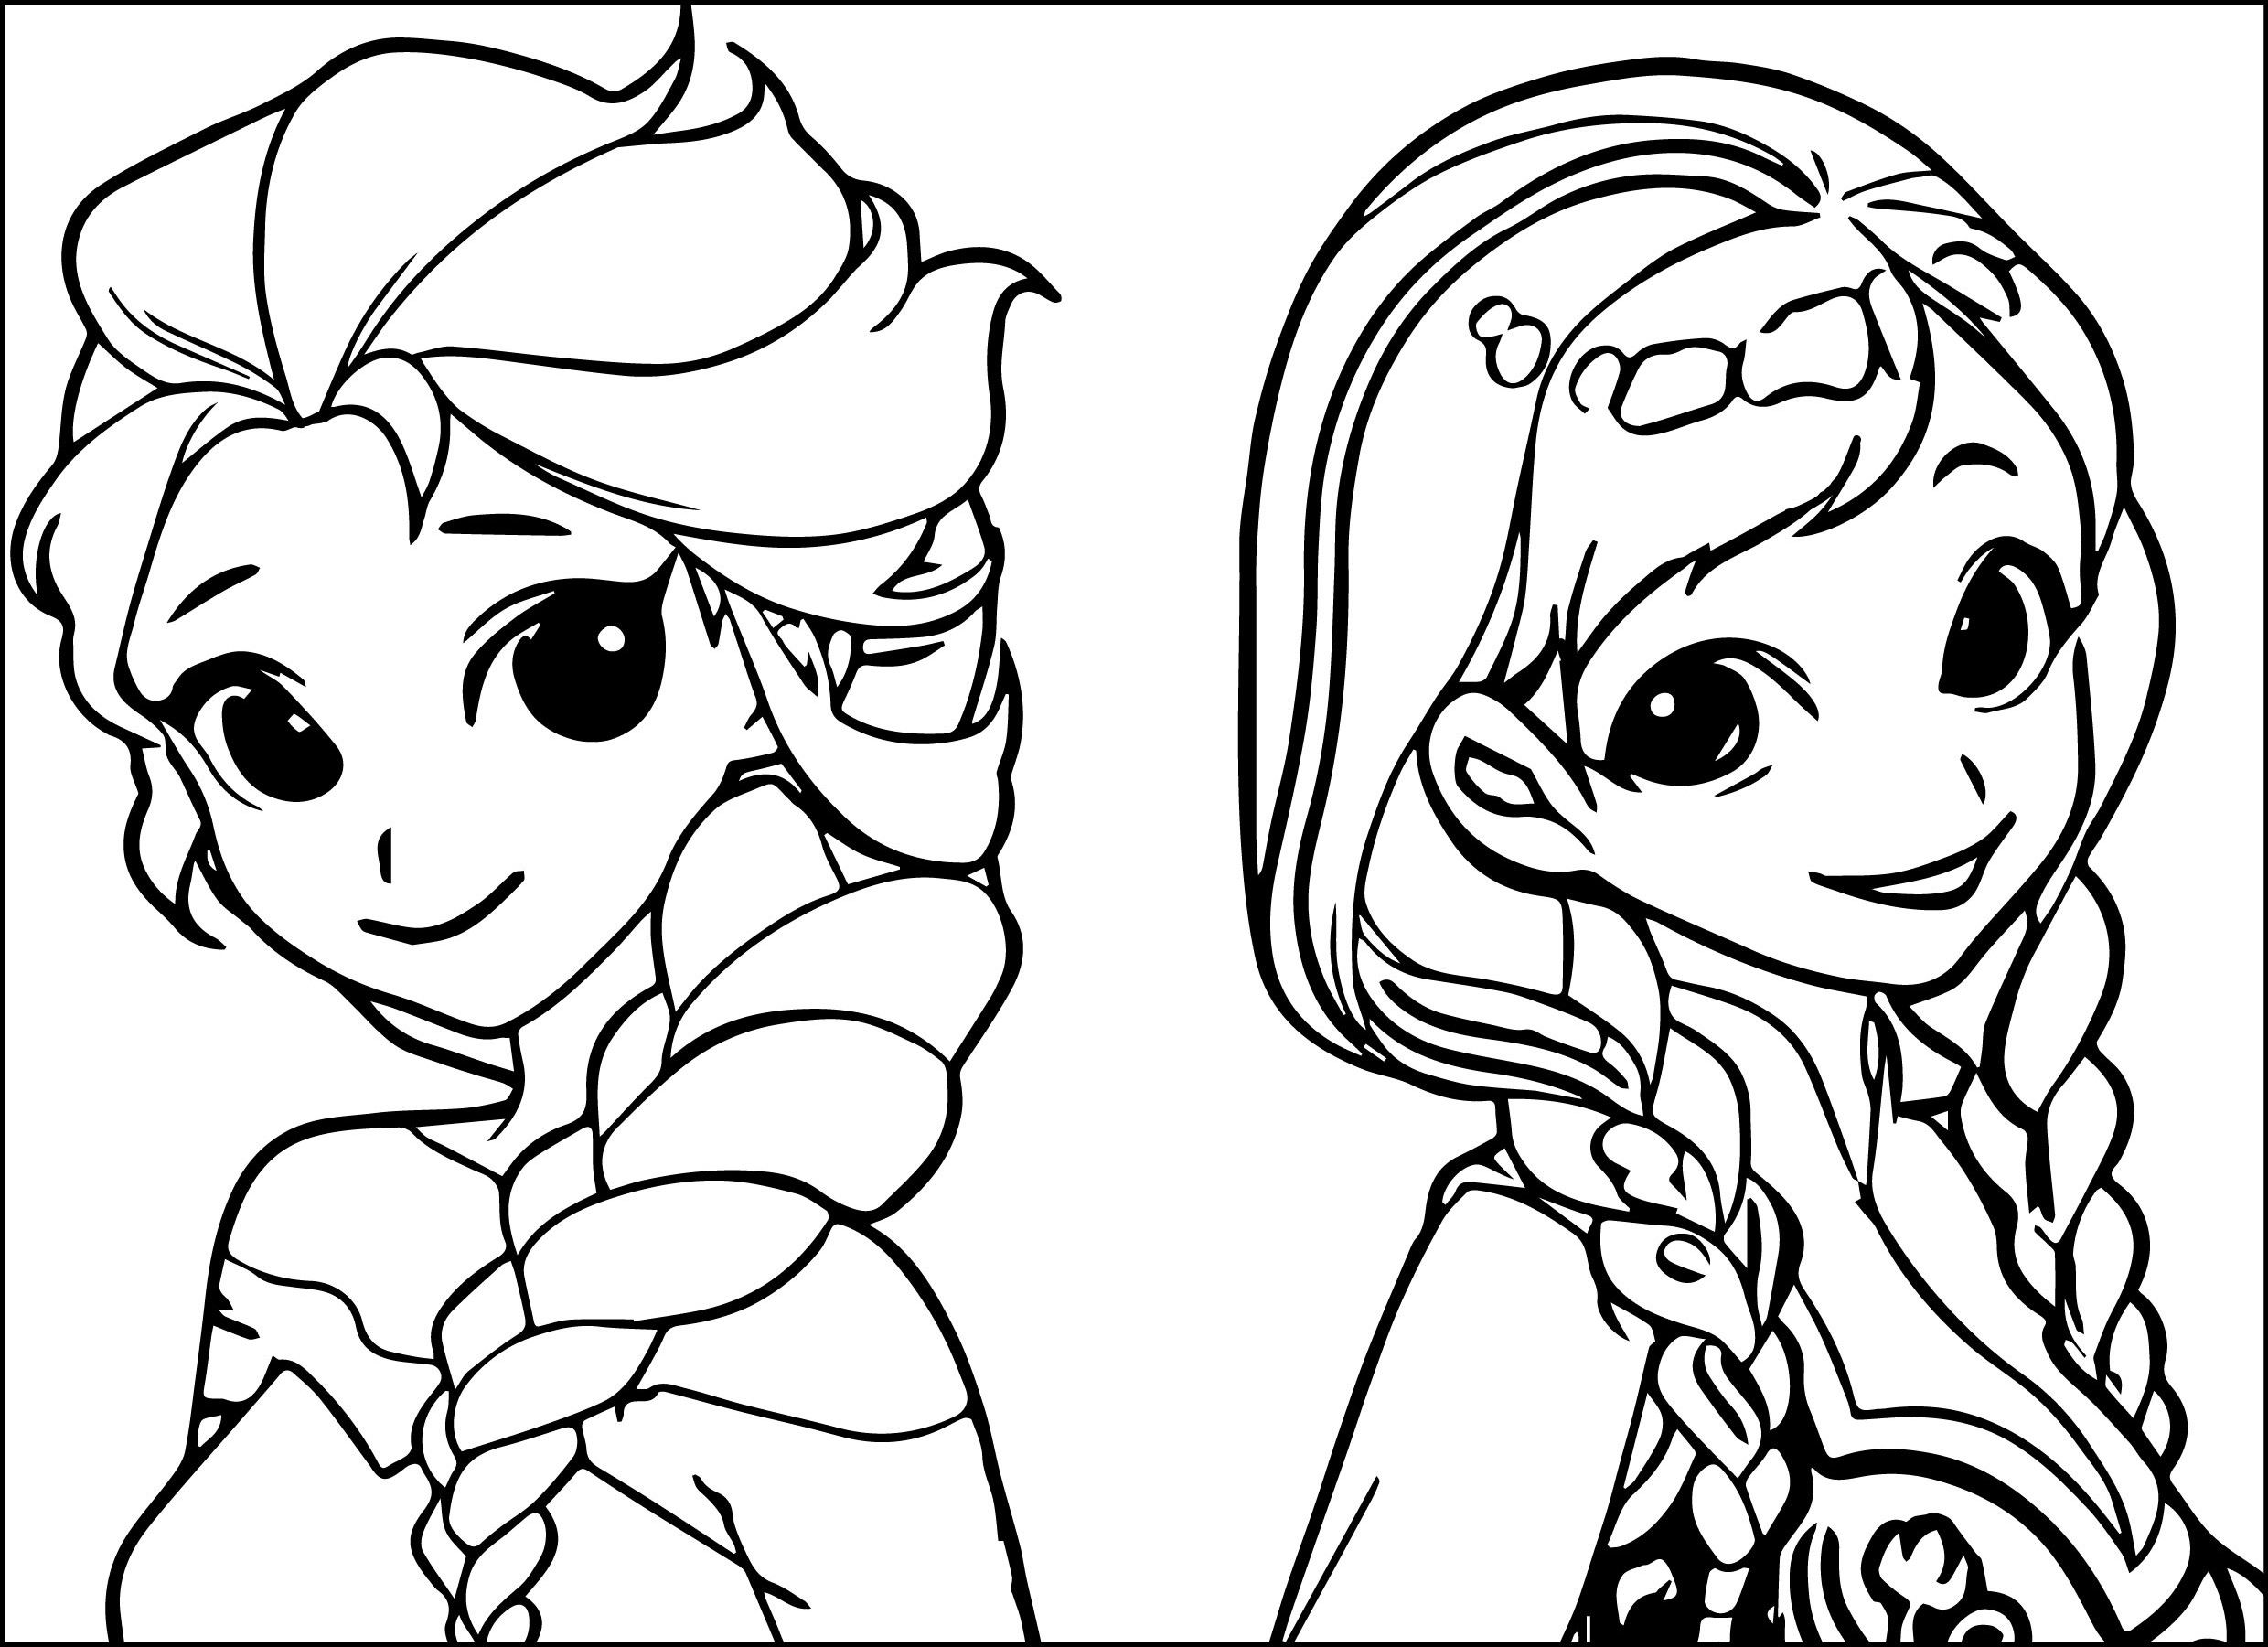 Elsa Anna Cartoon Coloring Page 01 Diy And Crafts Pinterest